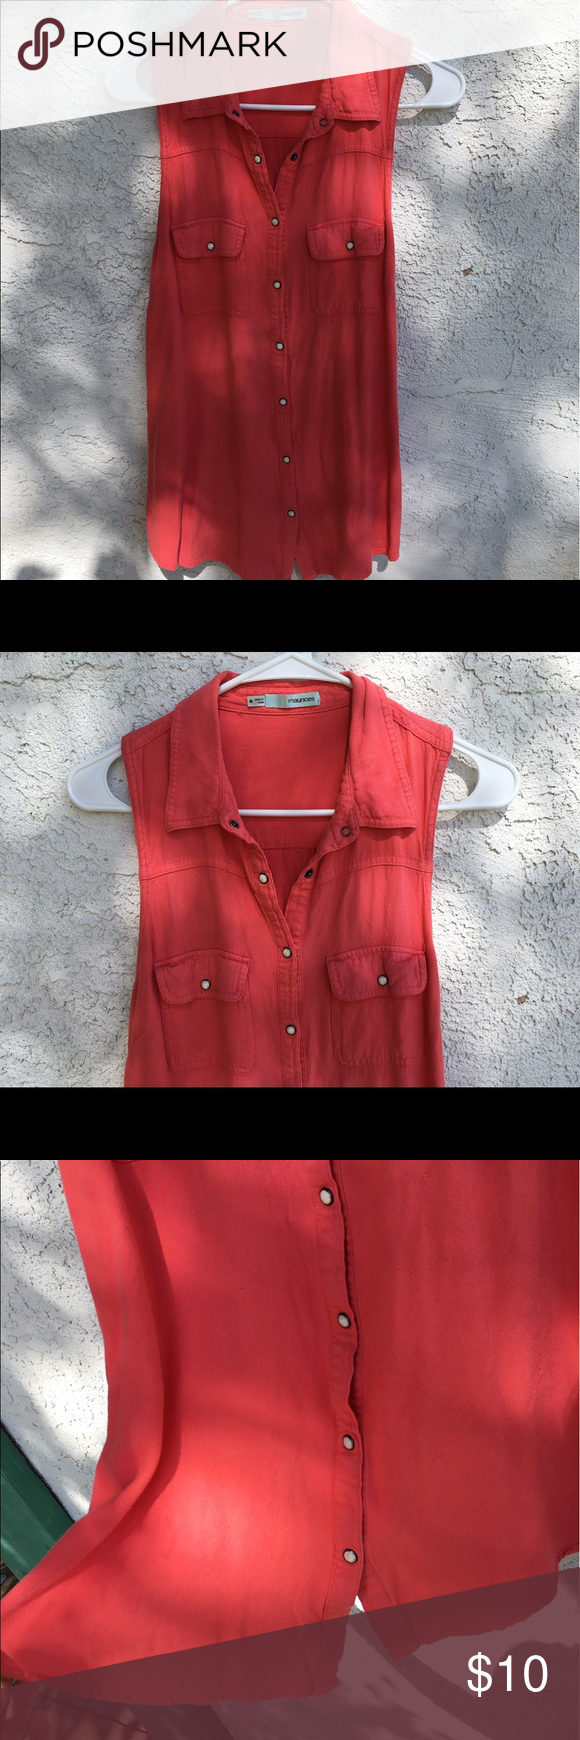 Coral Pink Button Up Shirt Soft And Flowy Coral Colored Shirt